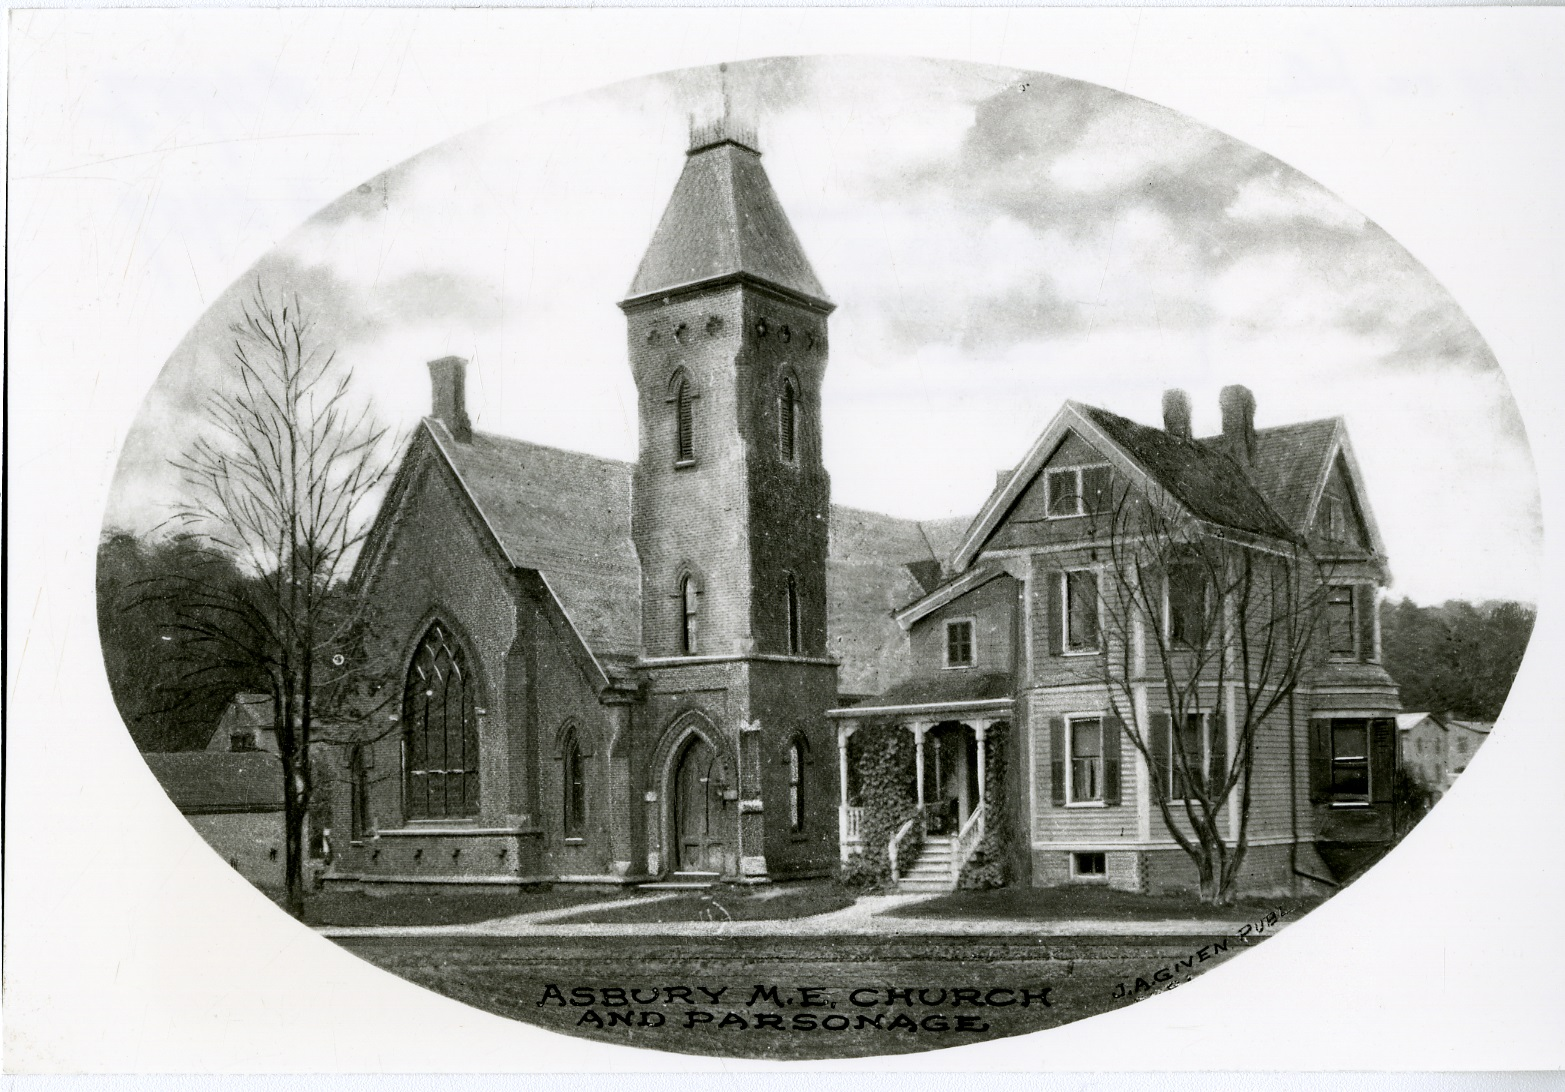 Asbury Methodist Episcopal Church and Parsonage, c.1900.